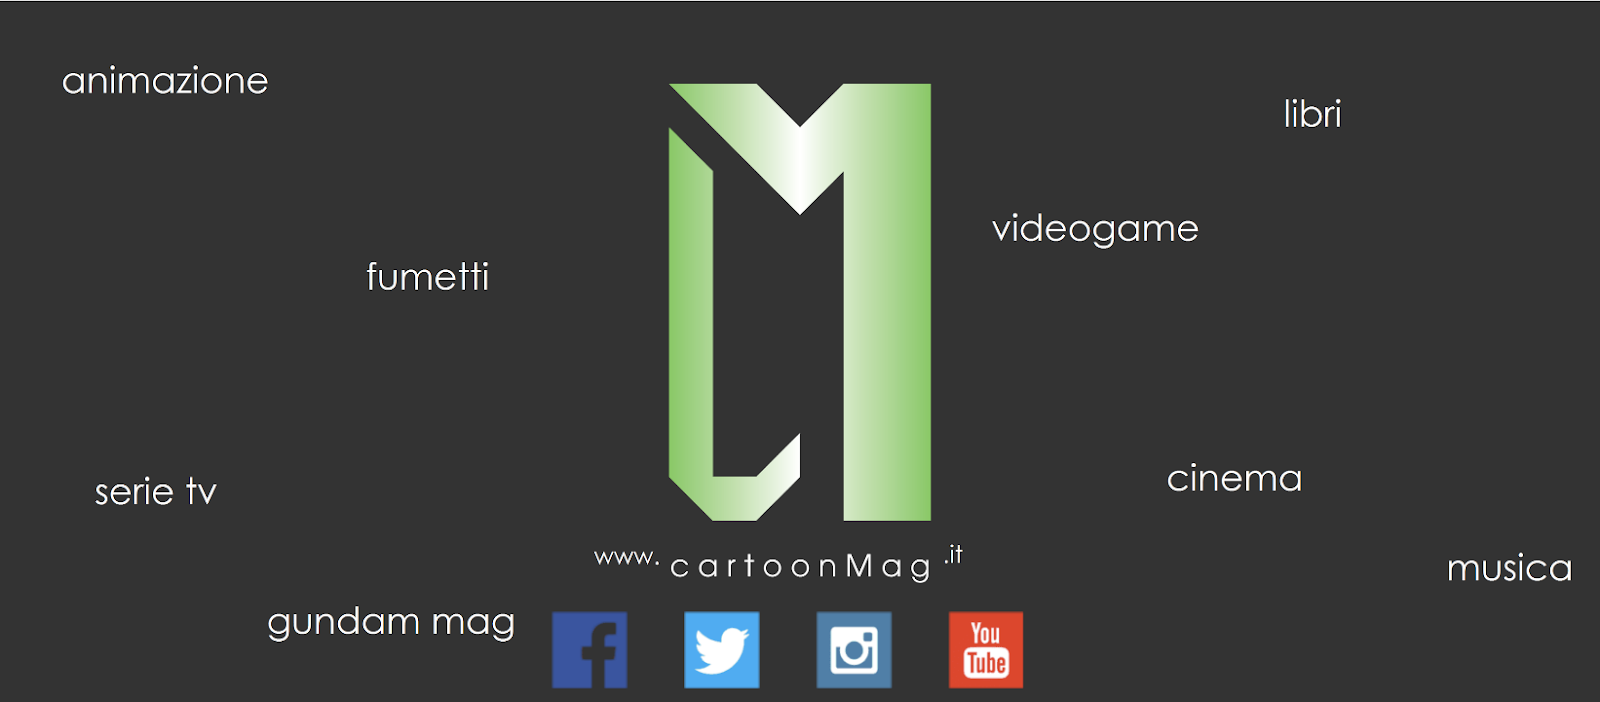 CARTOONMAG.IT